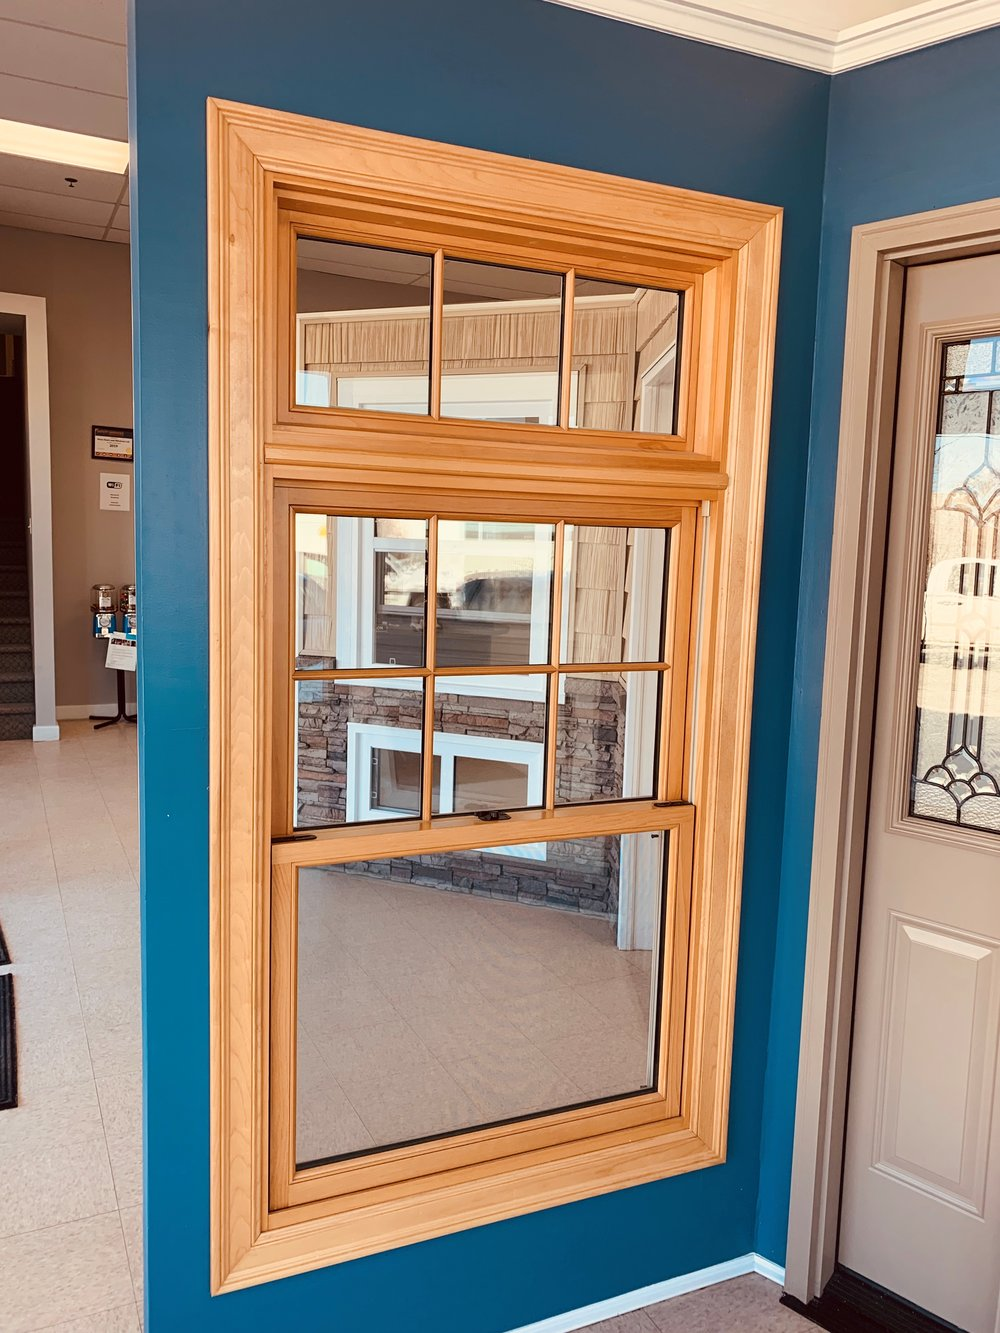 WOOD & ALUMINUM CLAD WINDOWS - Whether you're a window and door professional or a consumer looking for state-of-the-art products for your dream project, all of your expectations will be met with Lepage Millwork Windows. This product represents everything Lepage Millwork embodies: authenticity, premium materials and a look that leaves you breathless.Link: Click Here!